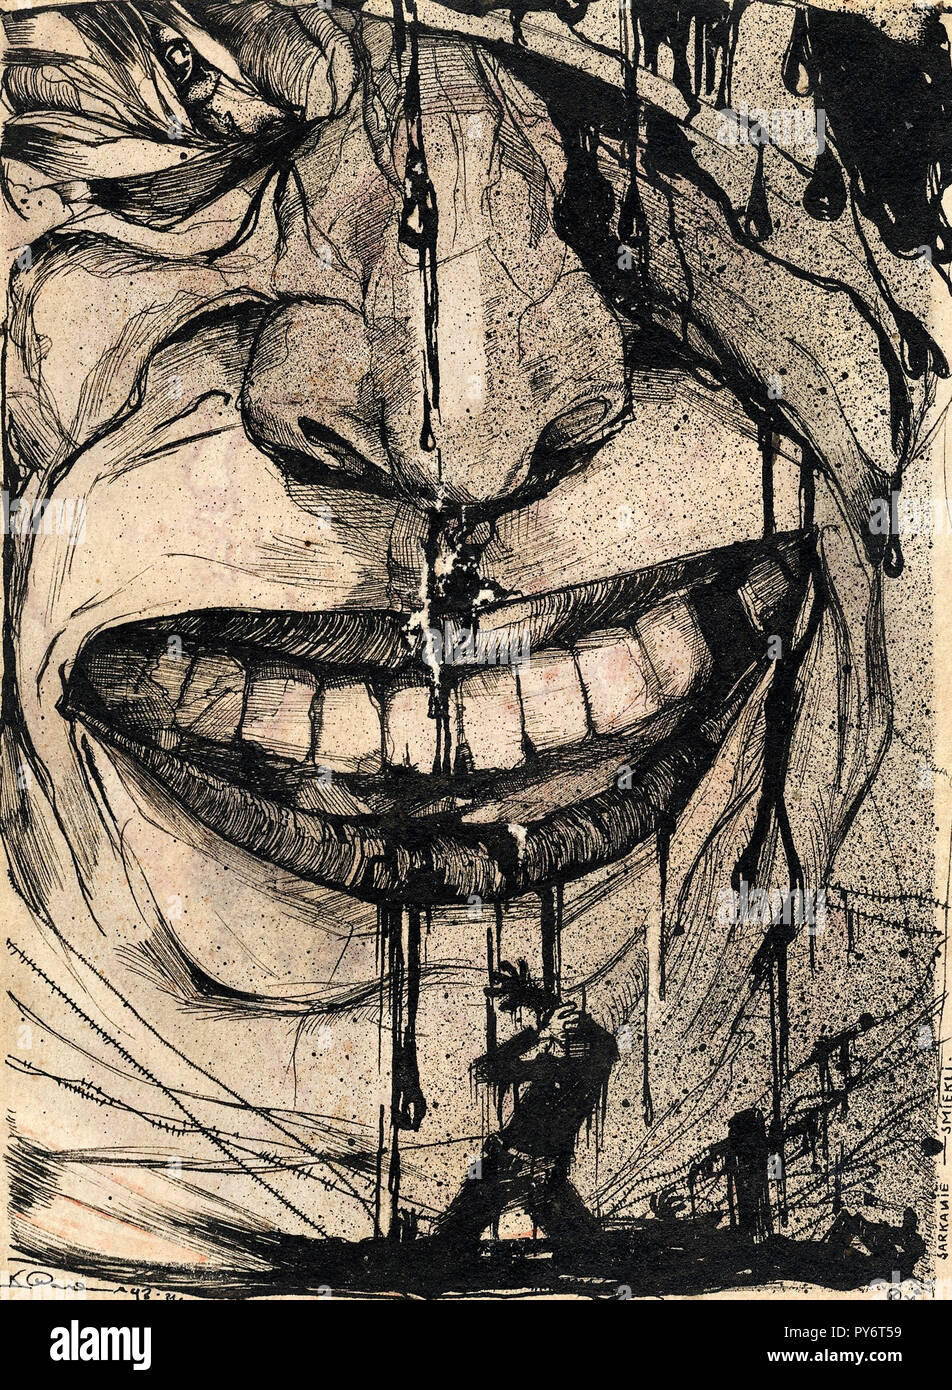 Karlis Padegs, Red Laughter 1931 Etching, Latvian Museum of Foreign Art, Riga, Latvia. - Stock Image